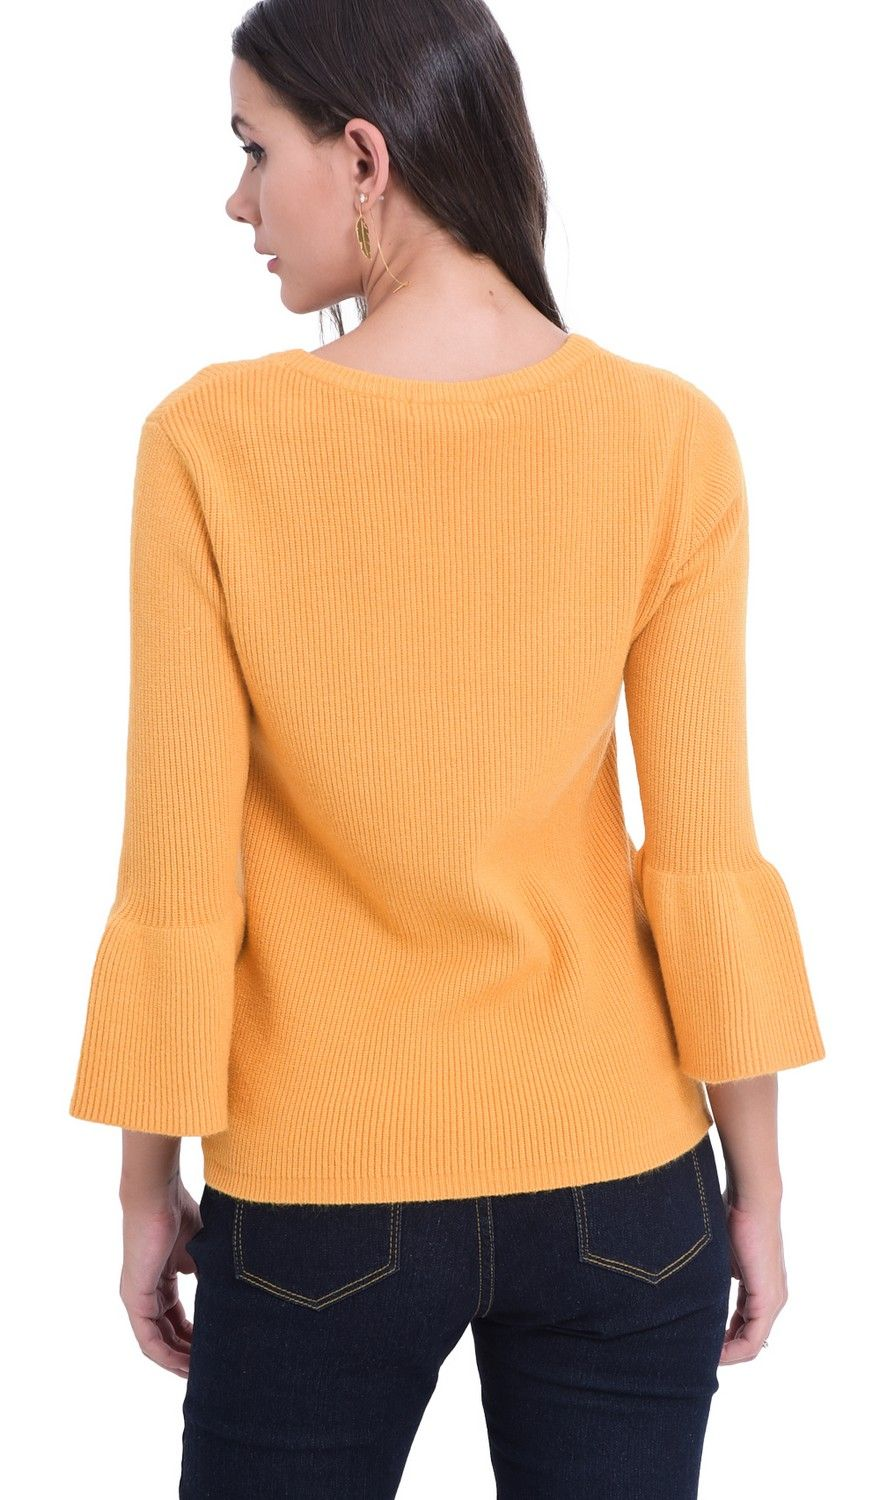 William De Faye Round Neck Sweater with Babydoll Sleeves in Mustard